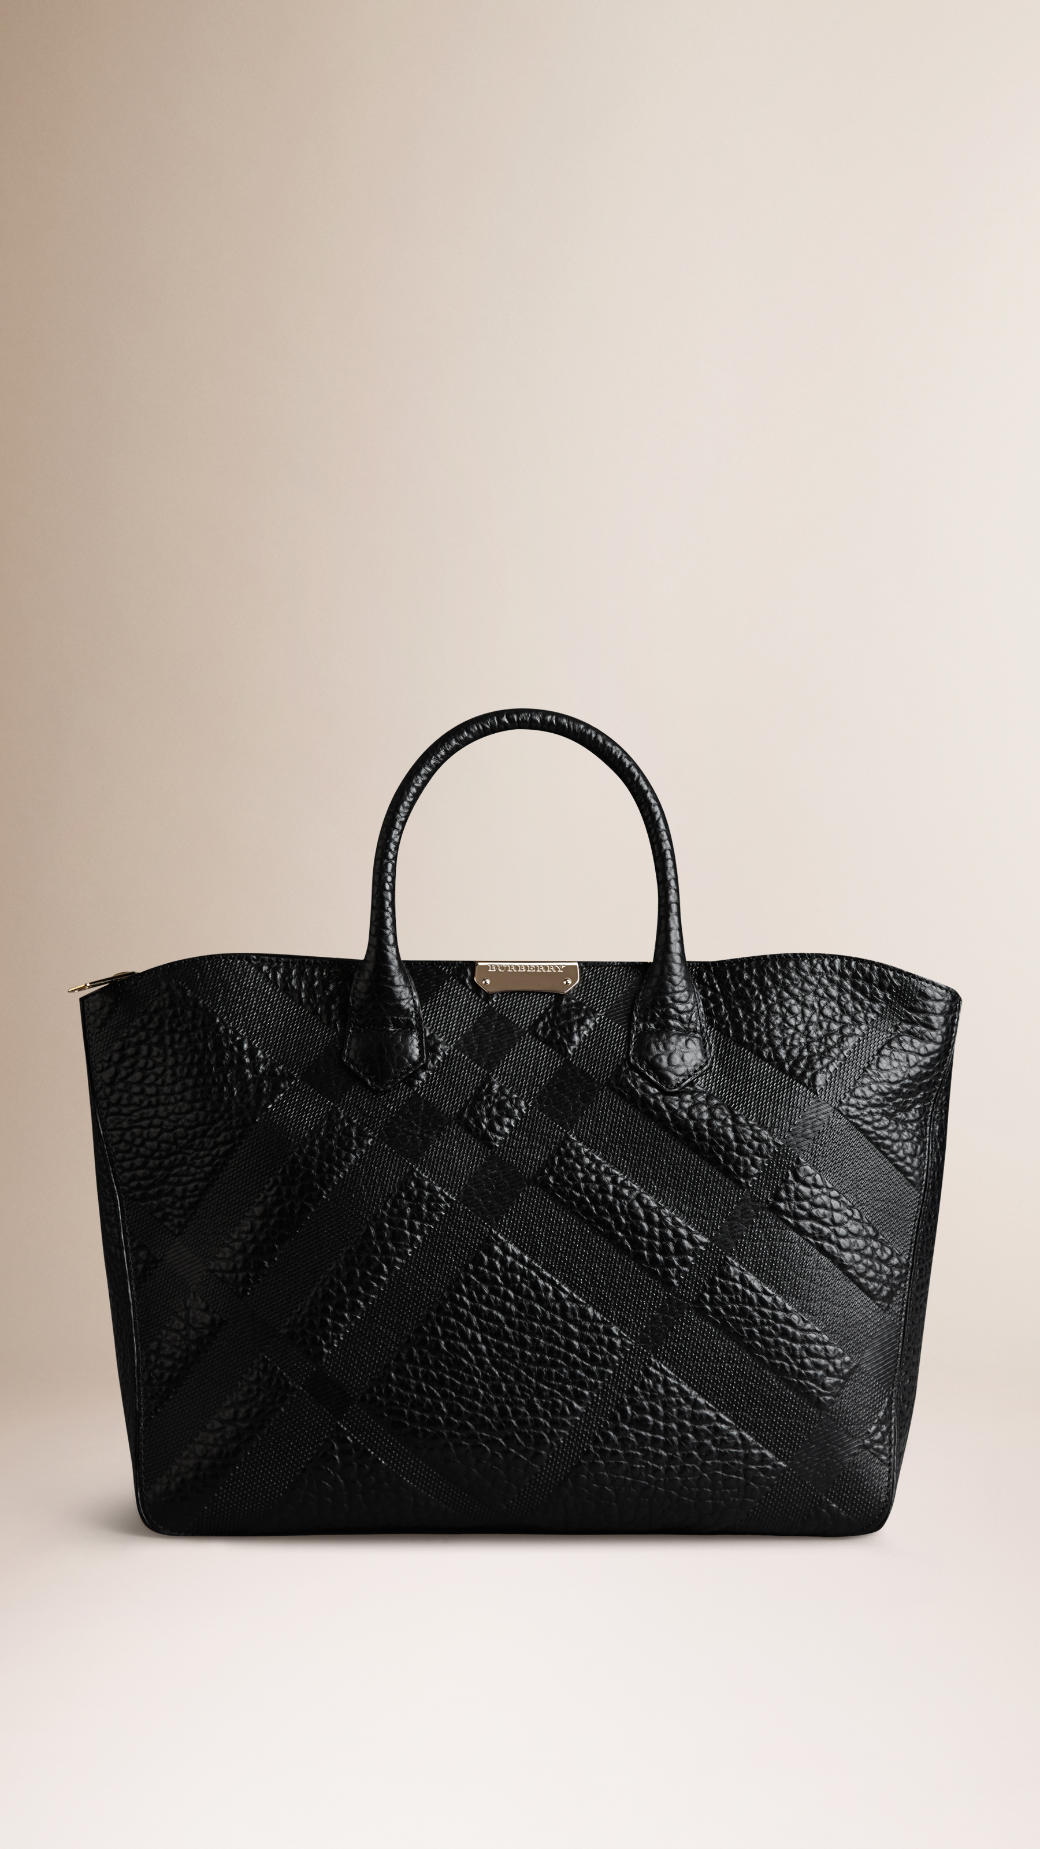 4b751d39bd5a Burberry Medium Embossed Check Leather Tote Bag in Black .